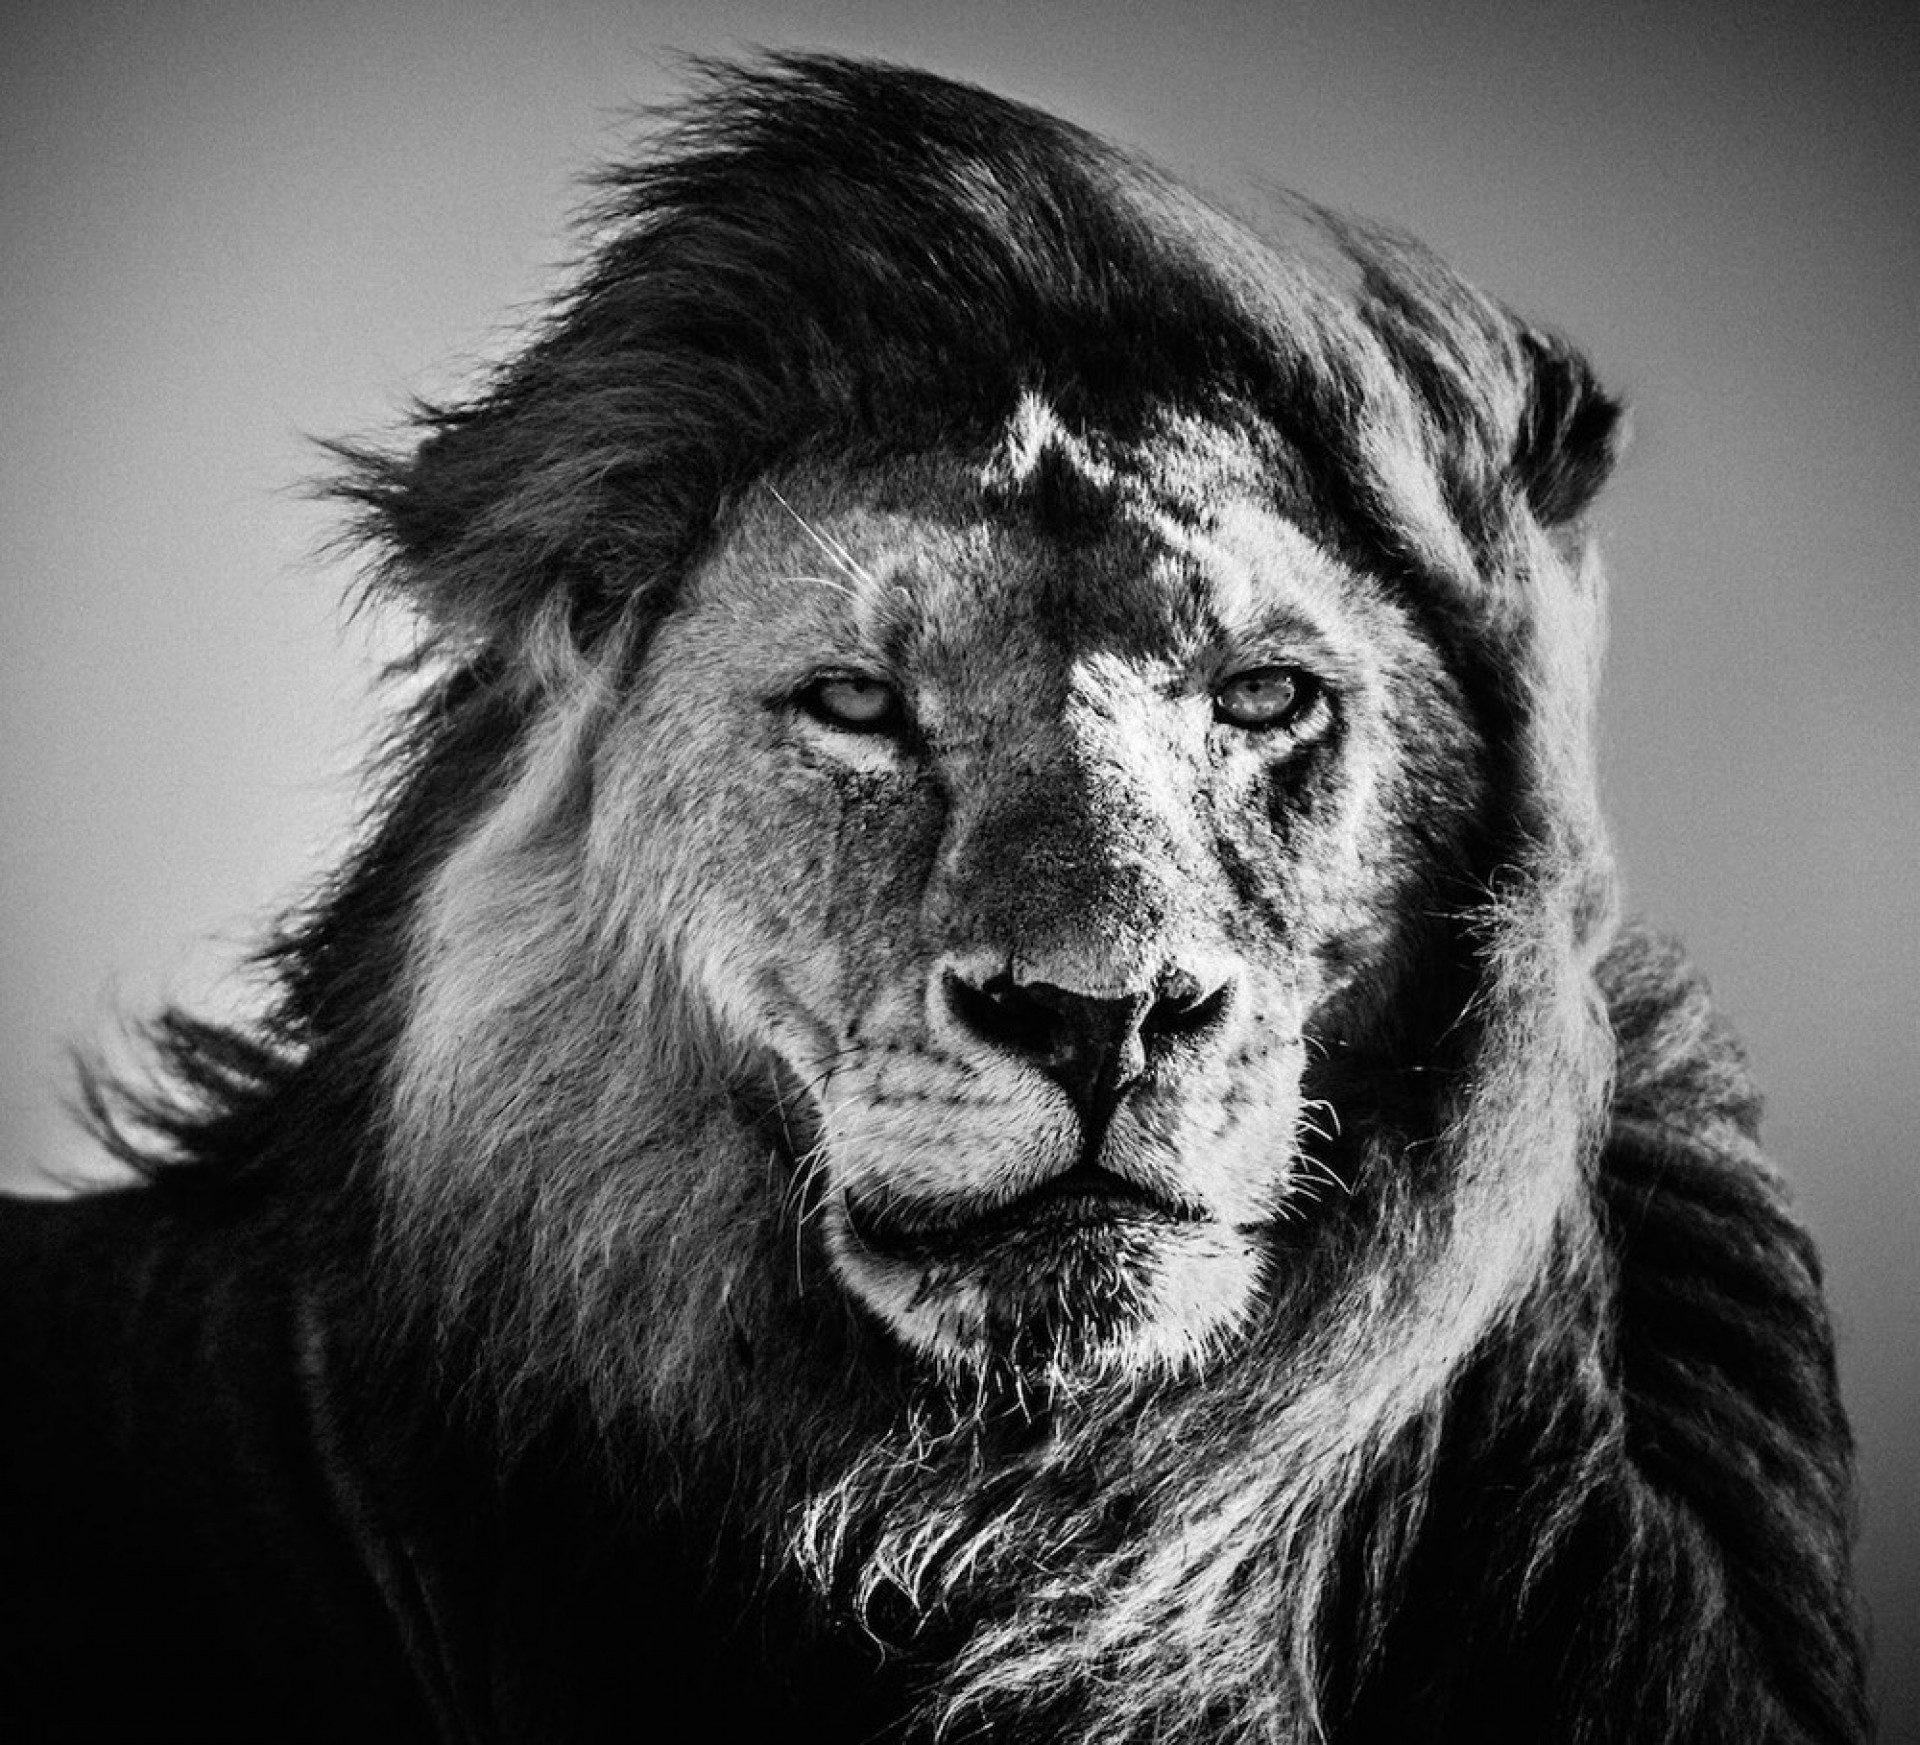 45 Lion Wallpaper Black And White Android Iphone Desktop Hd Backgrounds Wallpapers 1080p 4k 1920x1745 2020